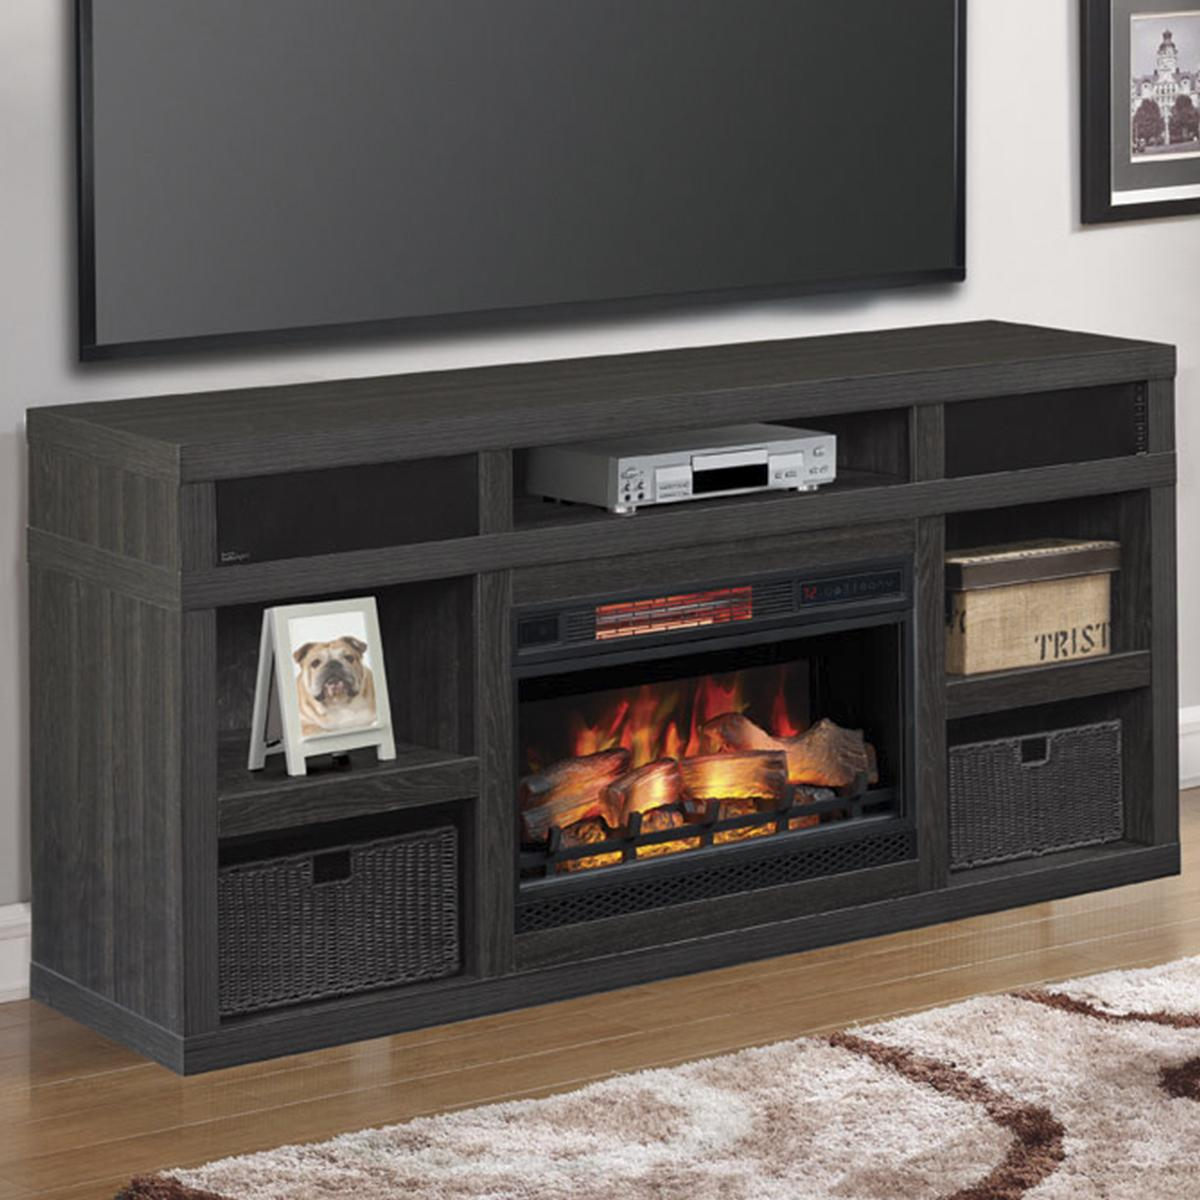 "Fireplace Des Moines Fresh Fabio Flames Greatlin 64"" Tv Stand In Black Walnut"